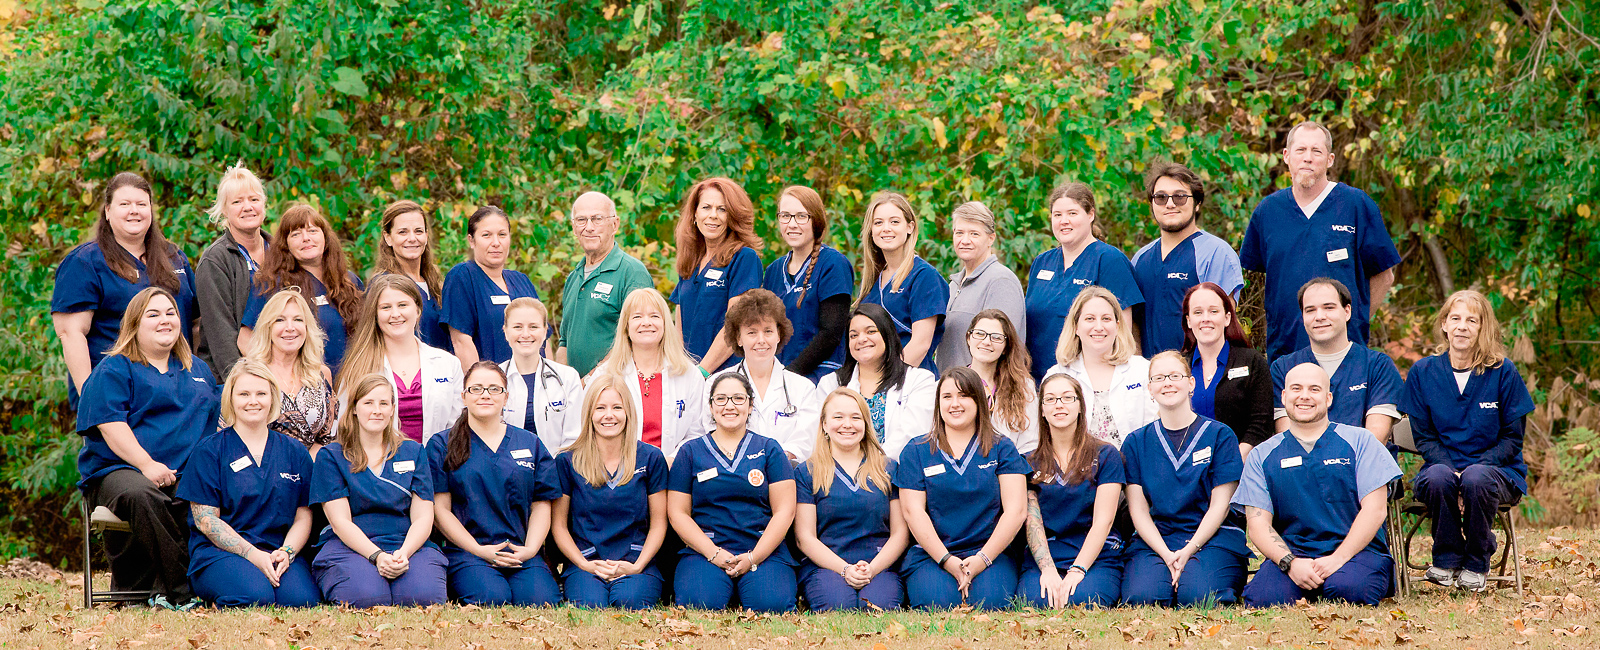 Team Picture of VCA Toms River Animal Hospital